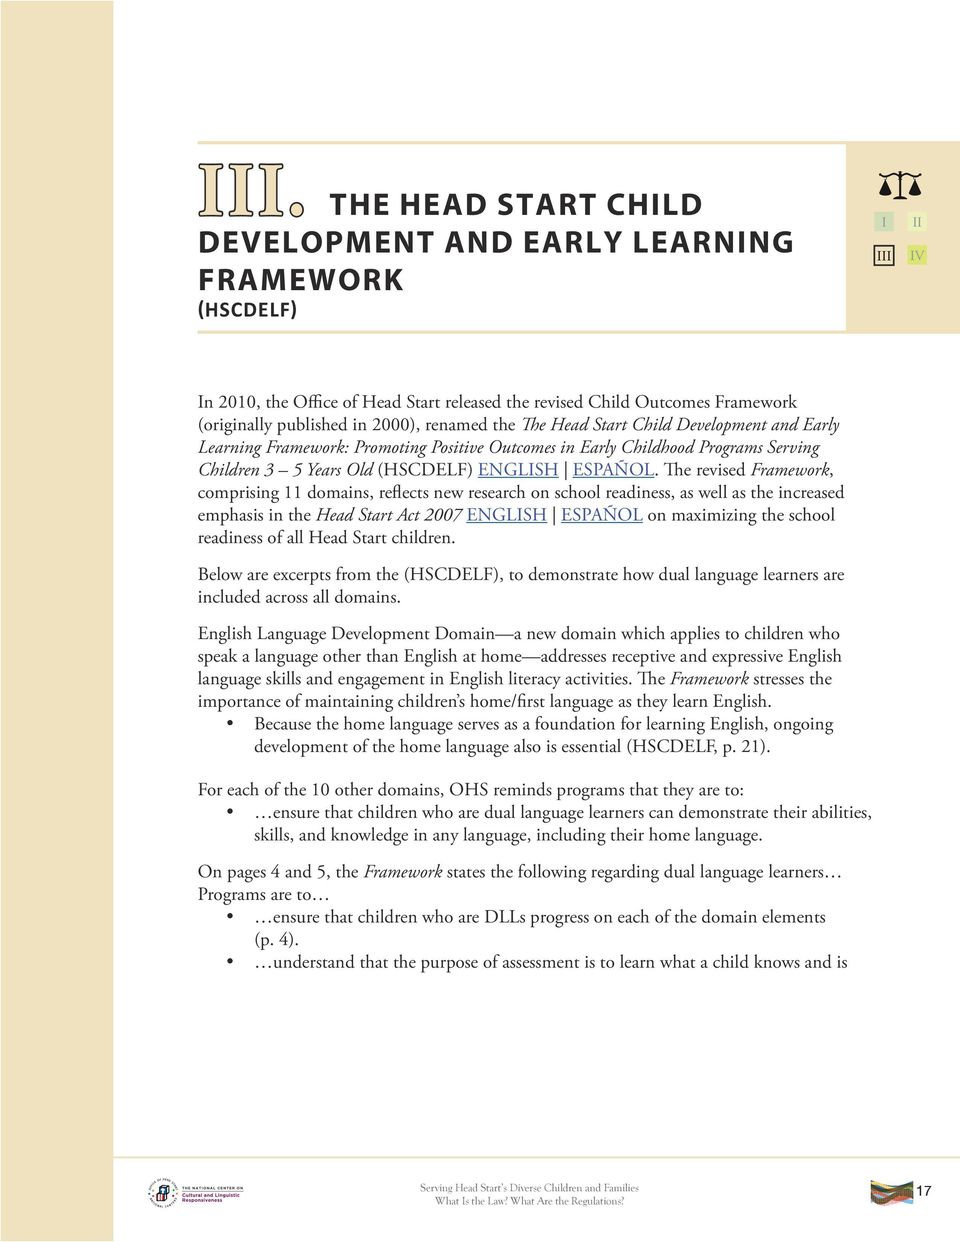 The revised Framework, comprising 11 domains, reflects new research on school readiness, as well as the increased emphasis in the Head Start Act 2007 ENGLISH ESPAÑOL on maximizing the school